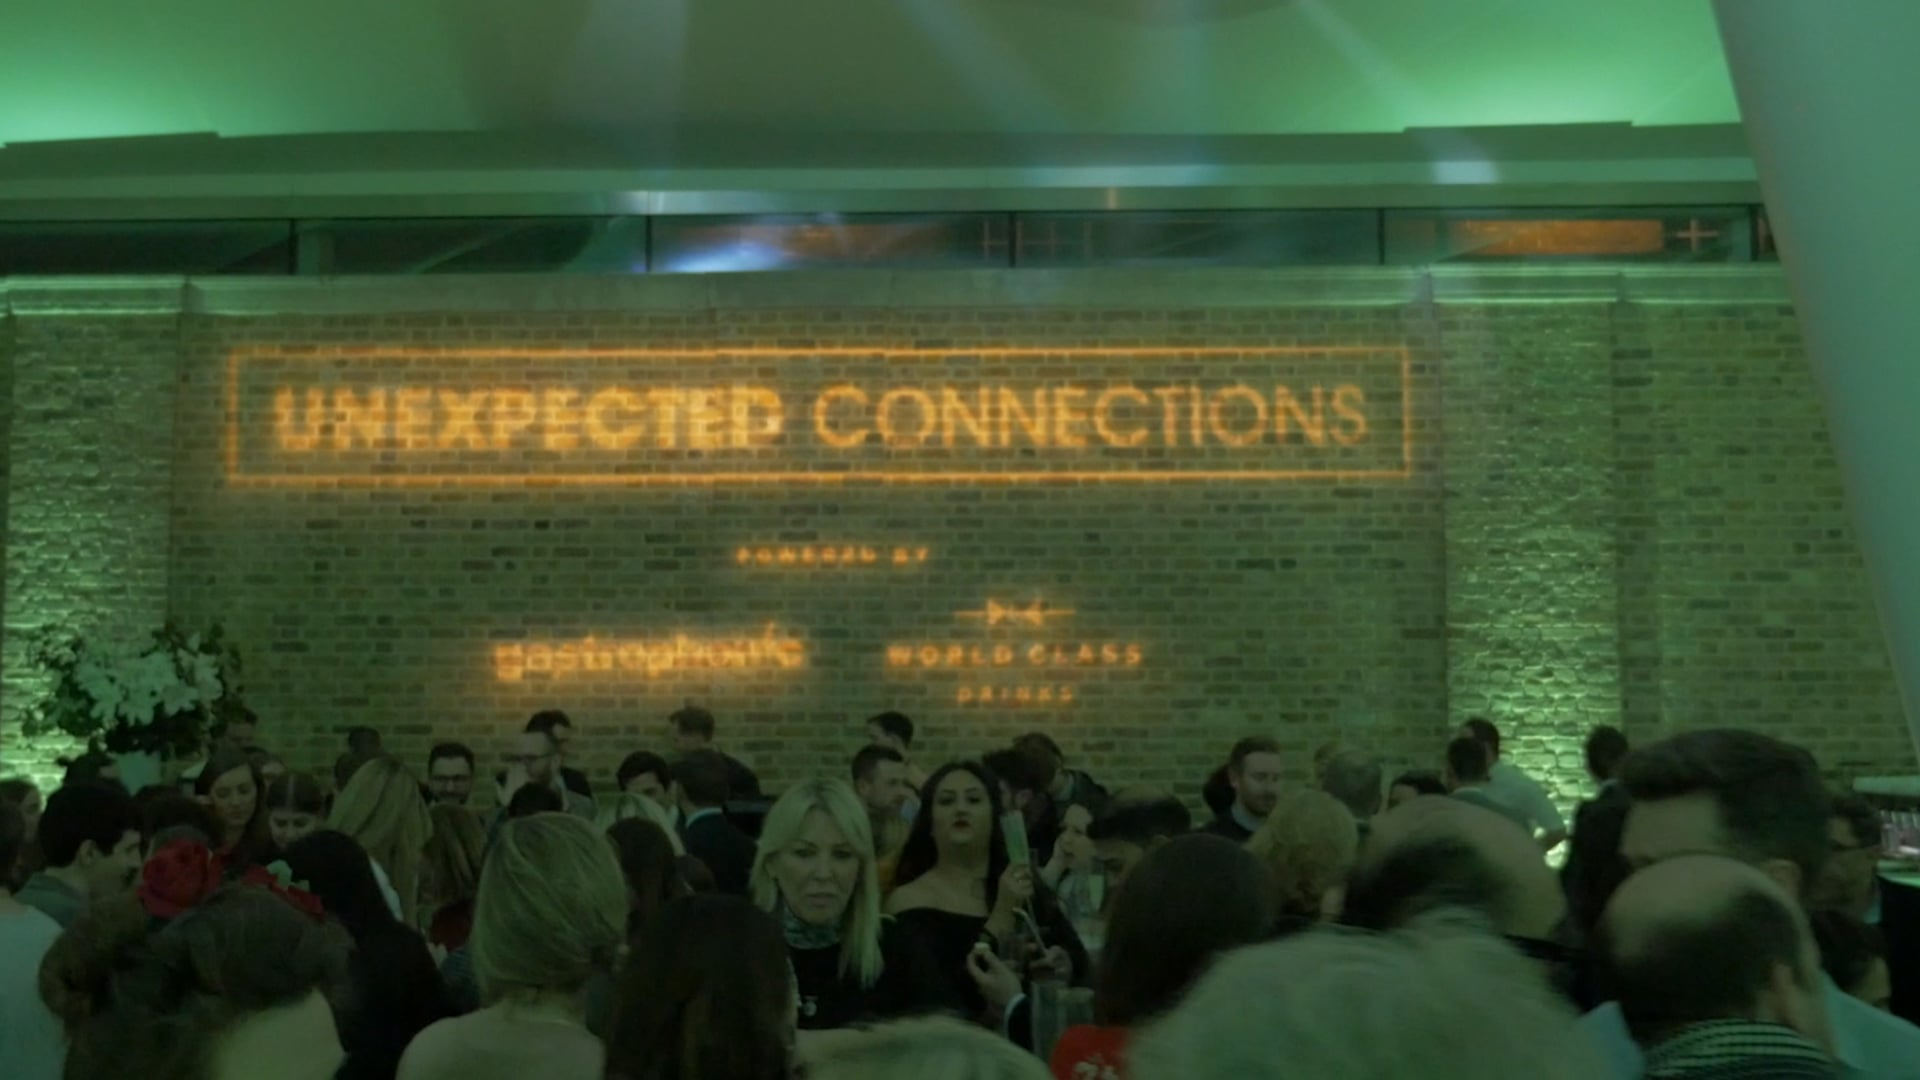 Unexpected Connections - House of Gastrophonic | Event Concept Ltd. | UK